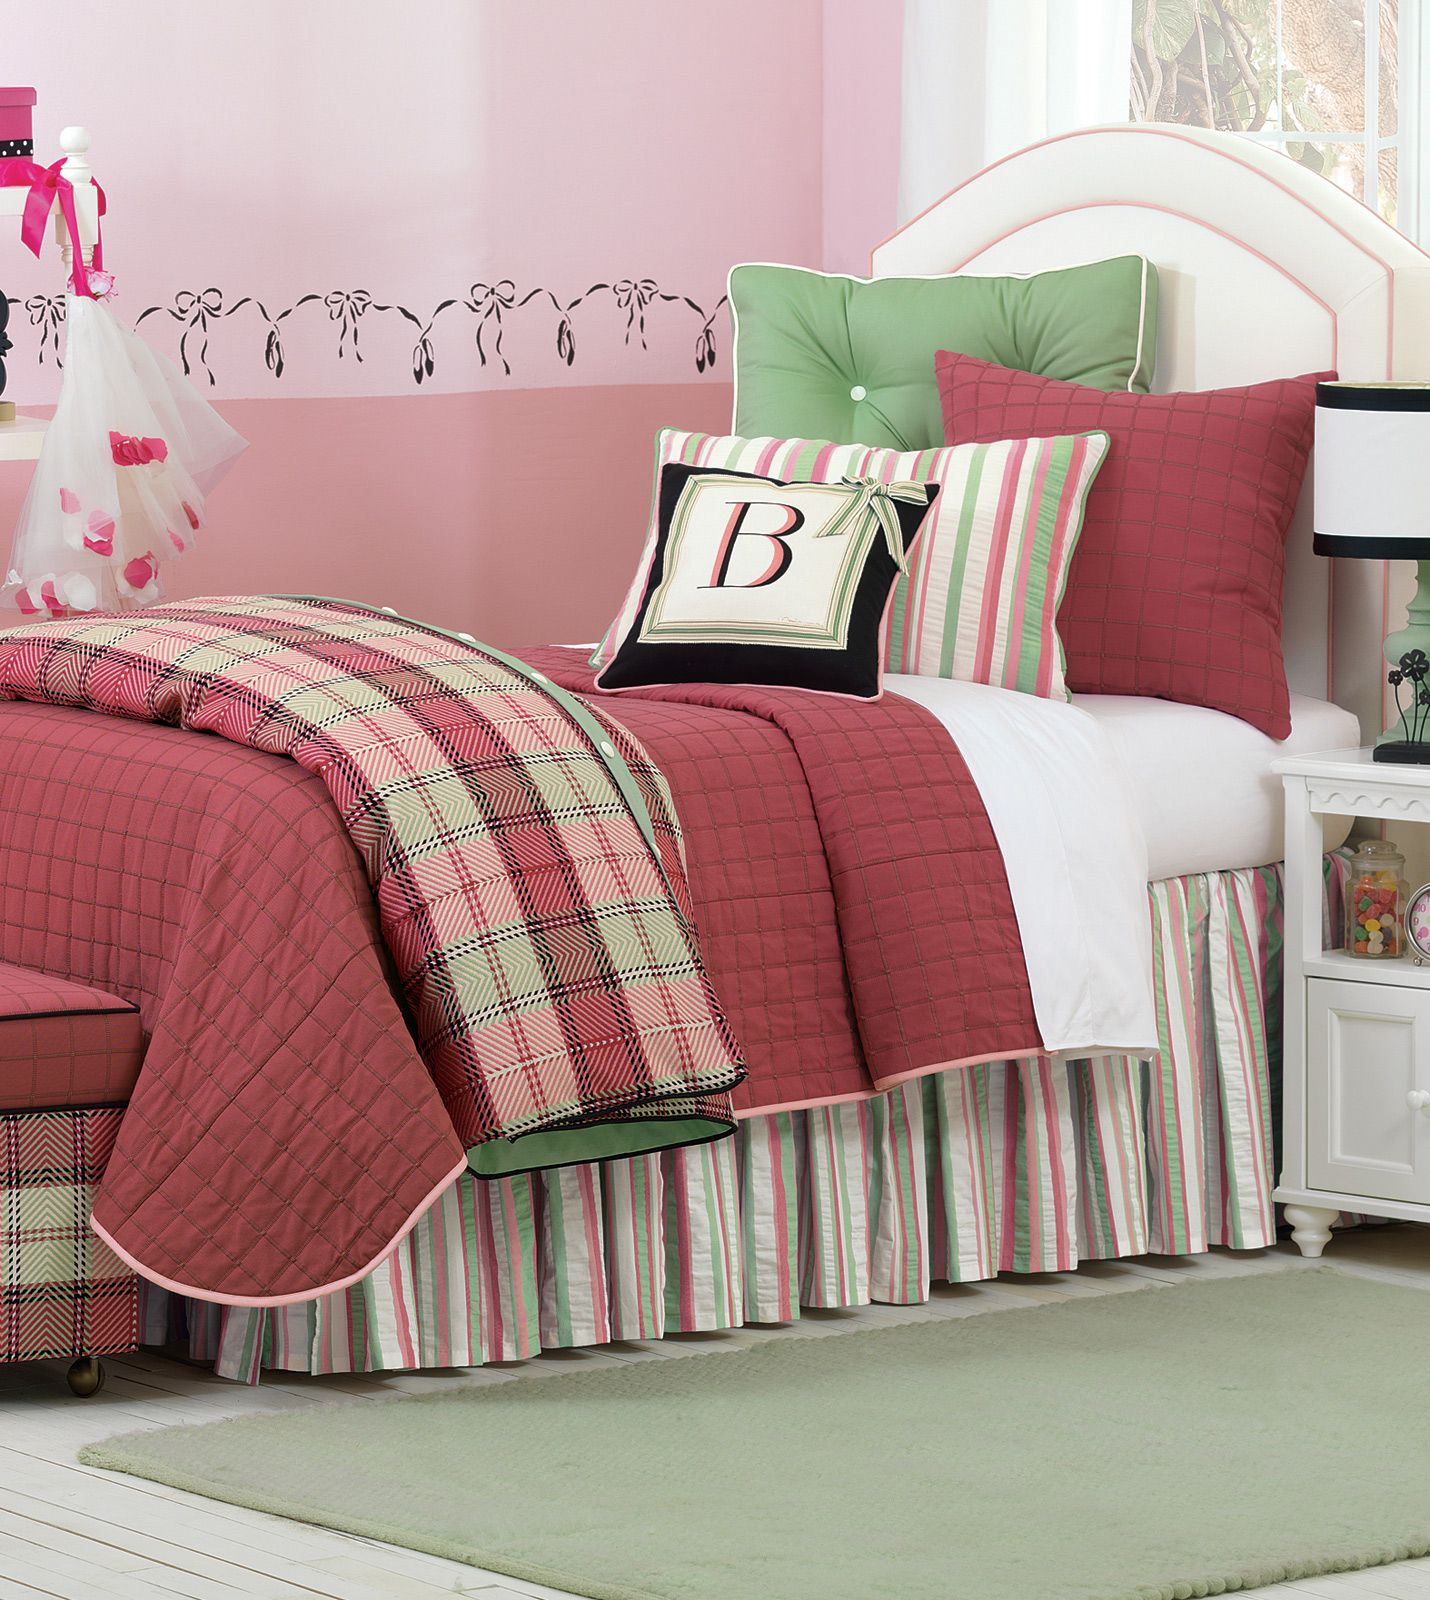 Luxury Bedding By Eastern Accents Pinkerton Berry Ensemble